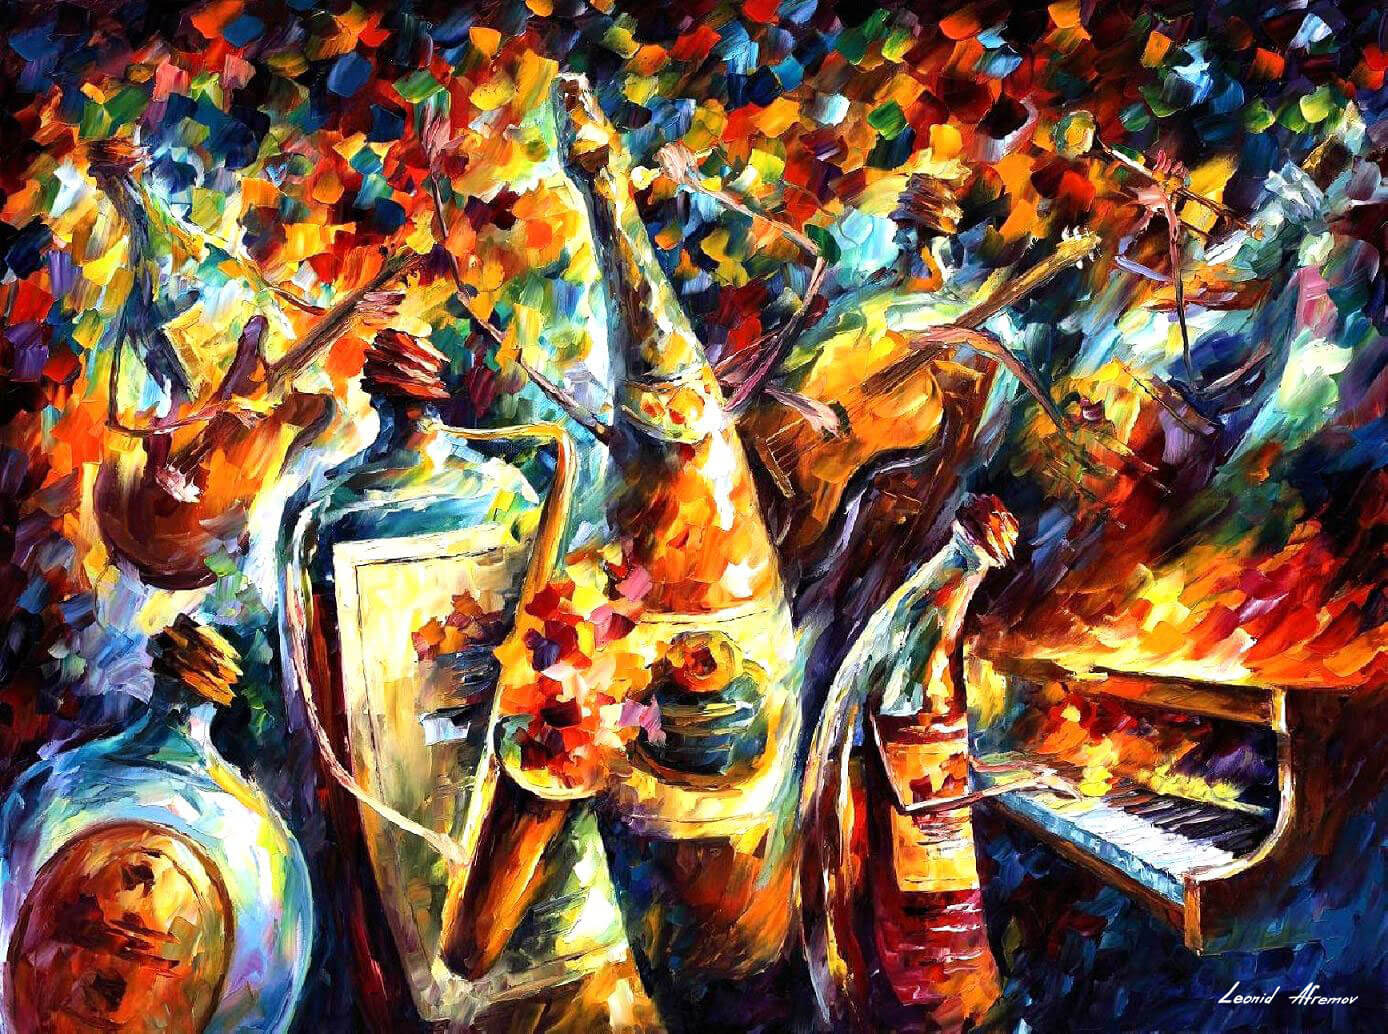 Bottle Band Palette Knife Oil Painting On Canvas By